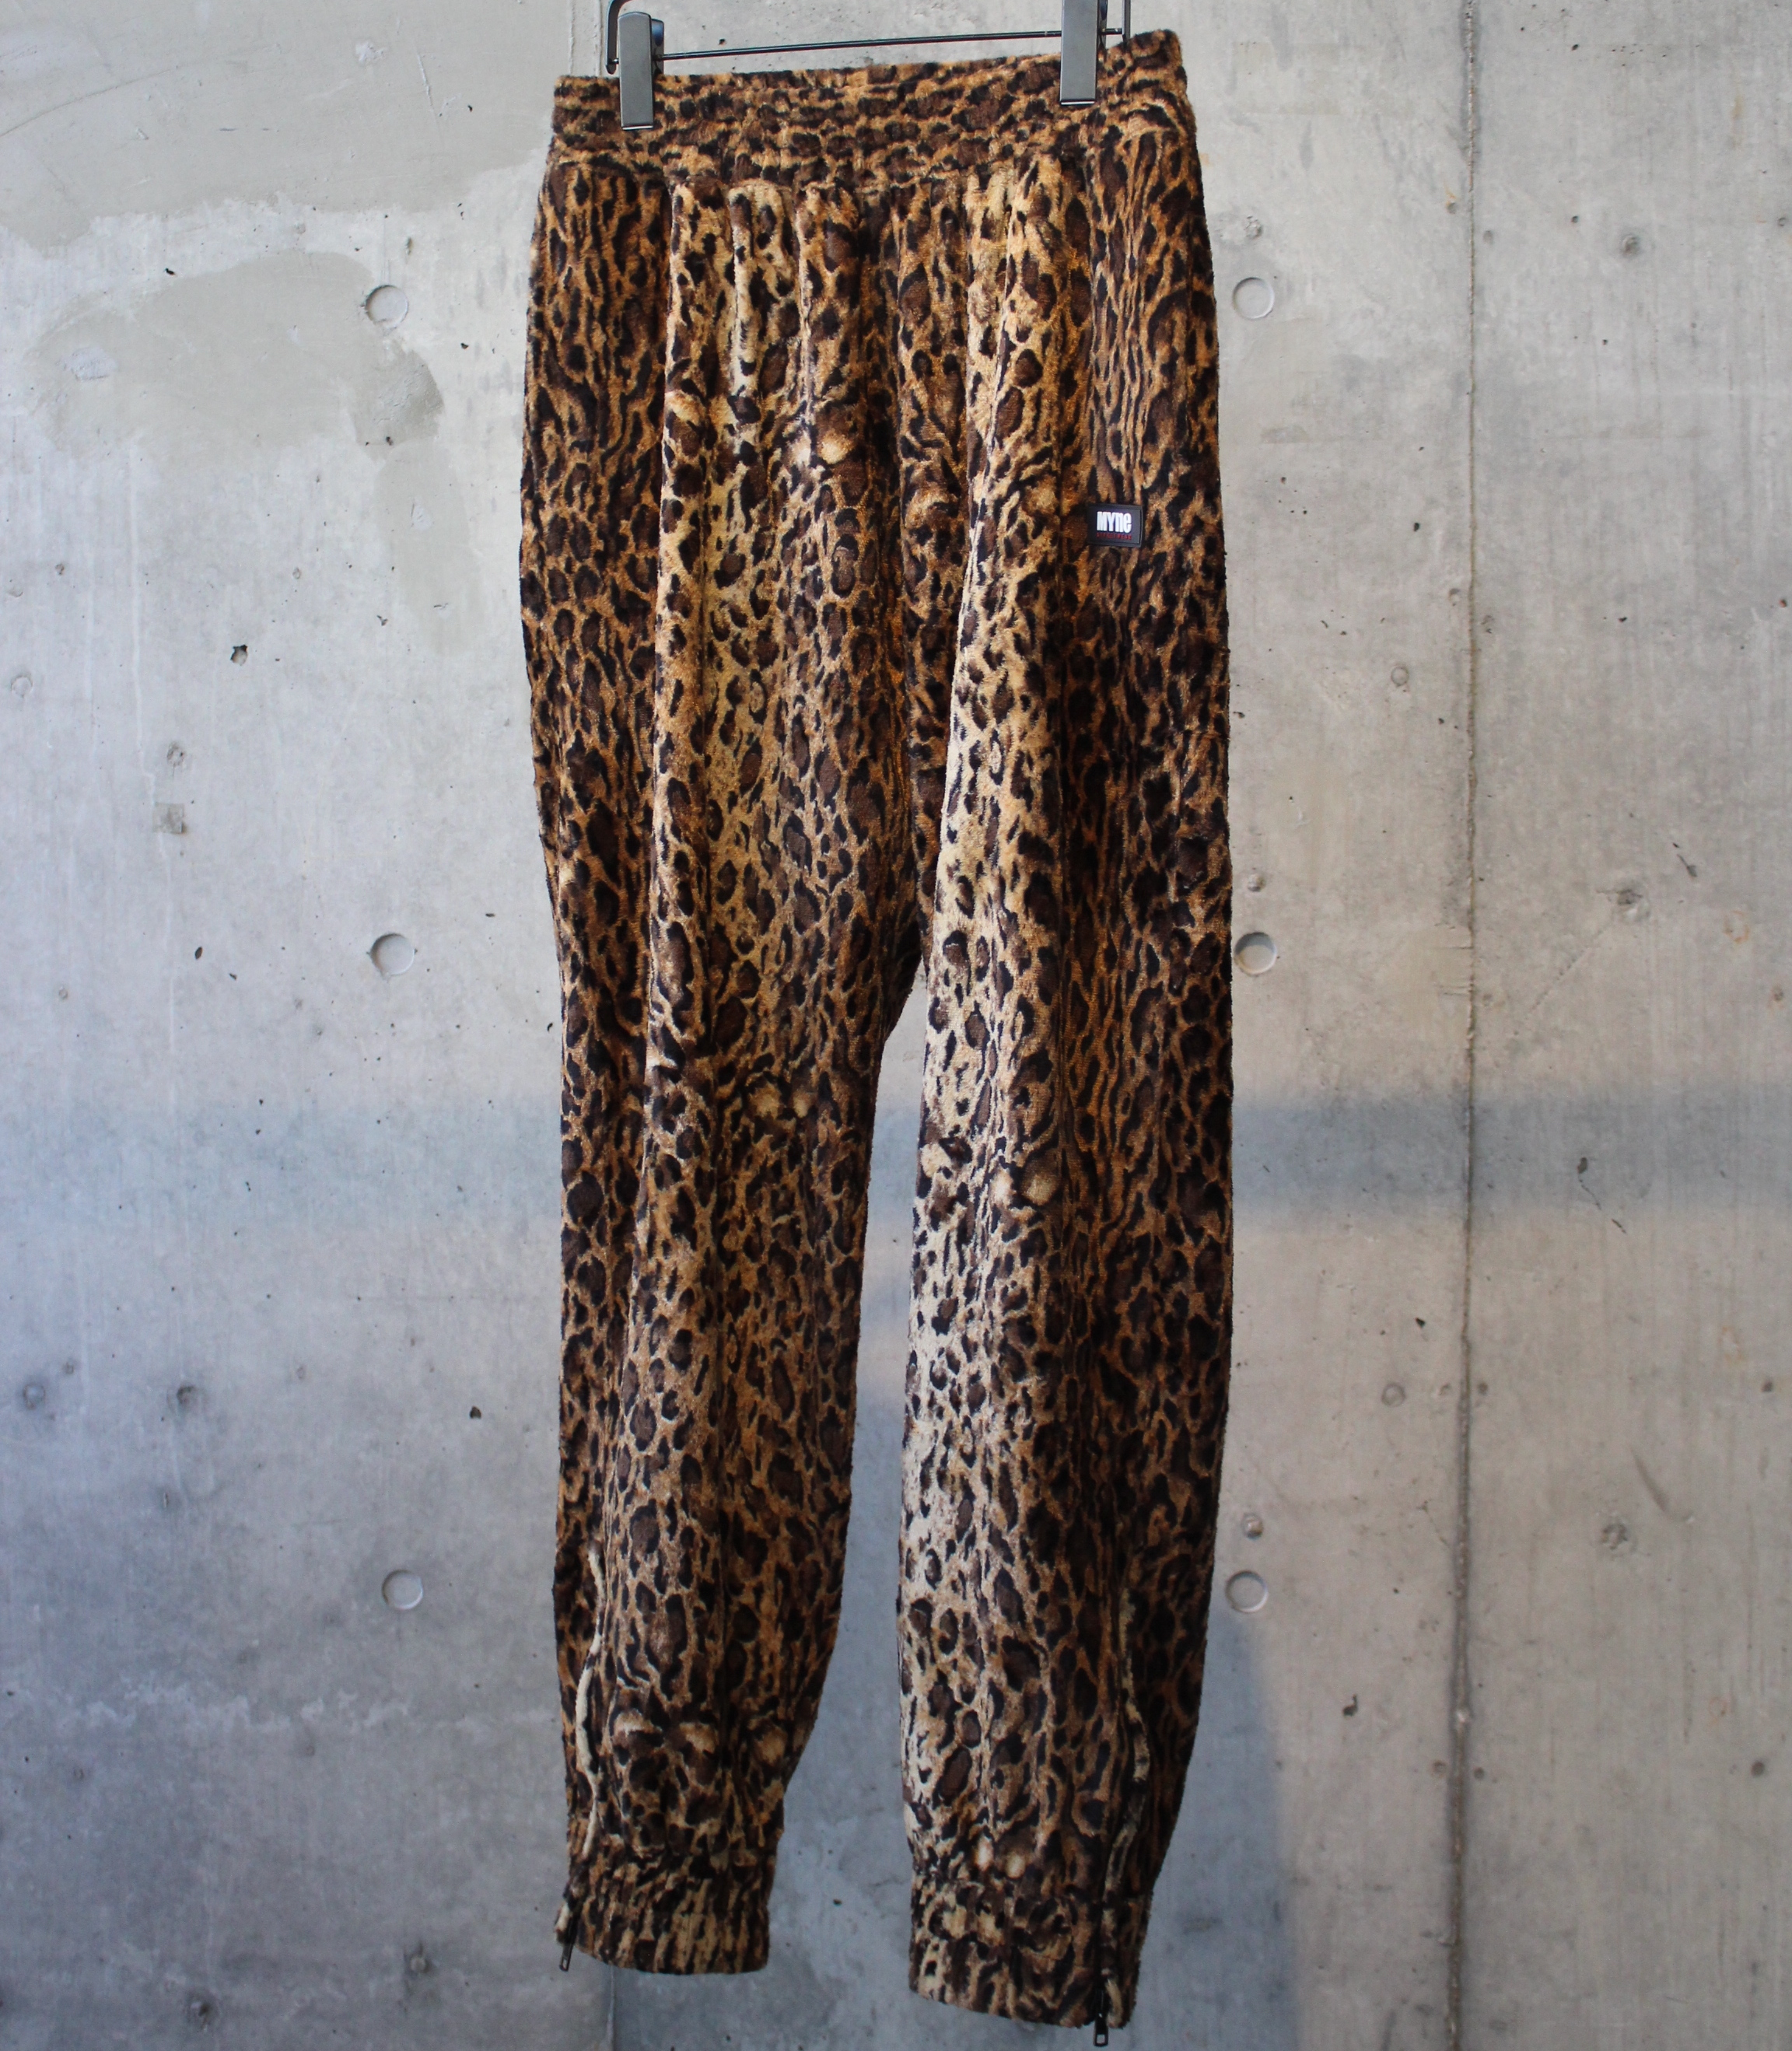 LEOPARD TRACK PANTS / BROWN - 画像1